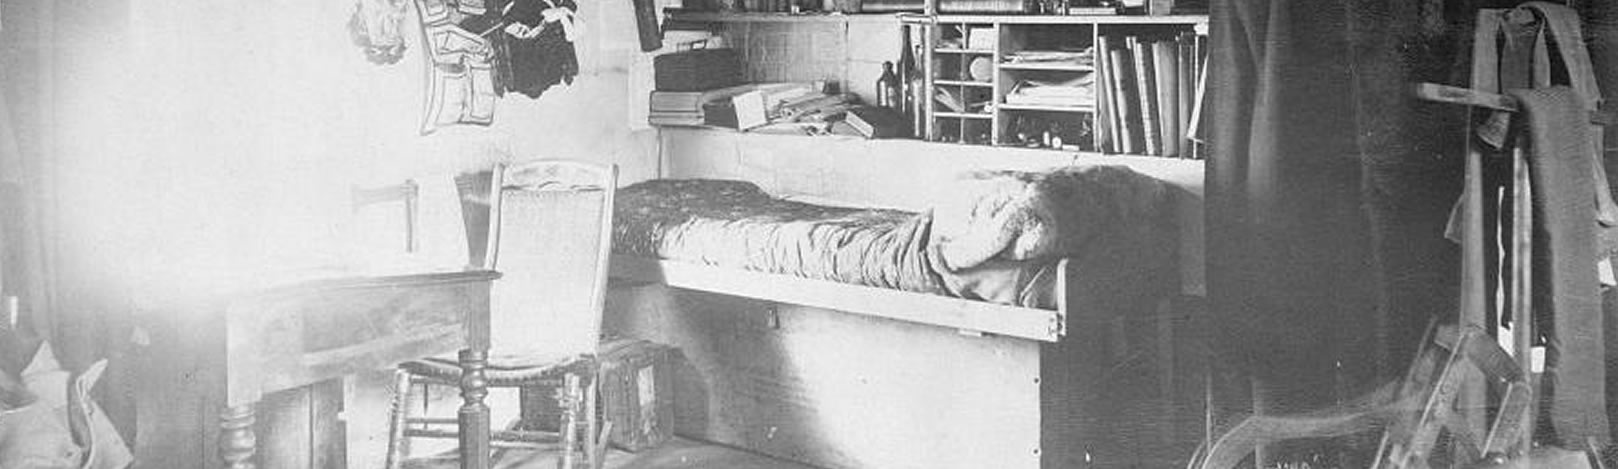 Historic photograph of Greely's quarters, showing his bed, desk, and bookshelves. A window near the desk illuminates the room.